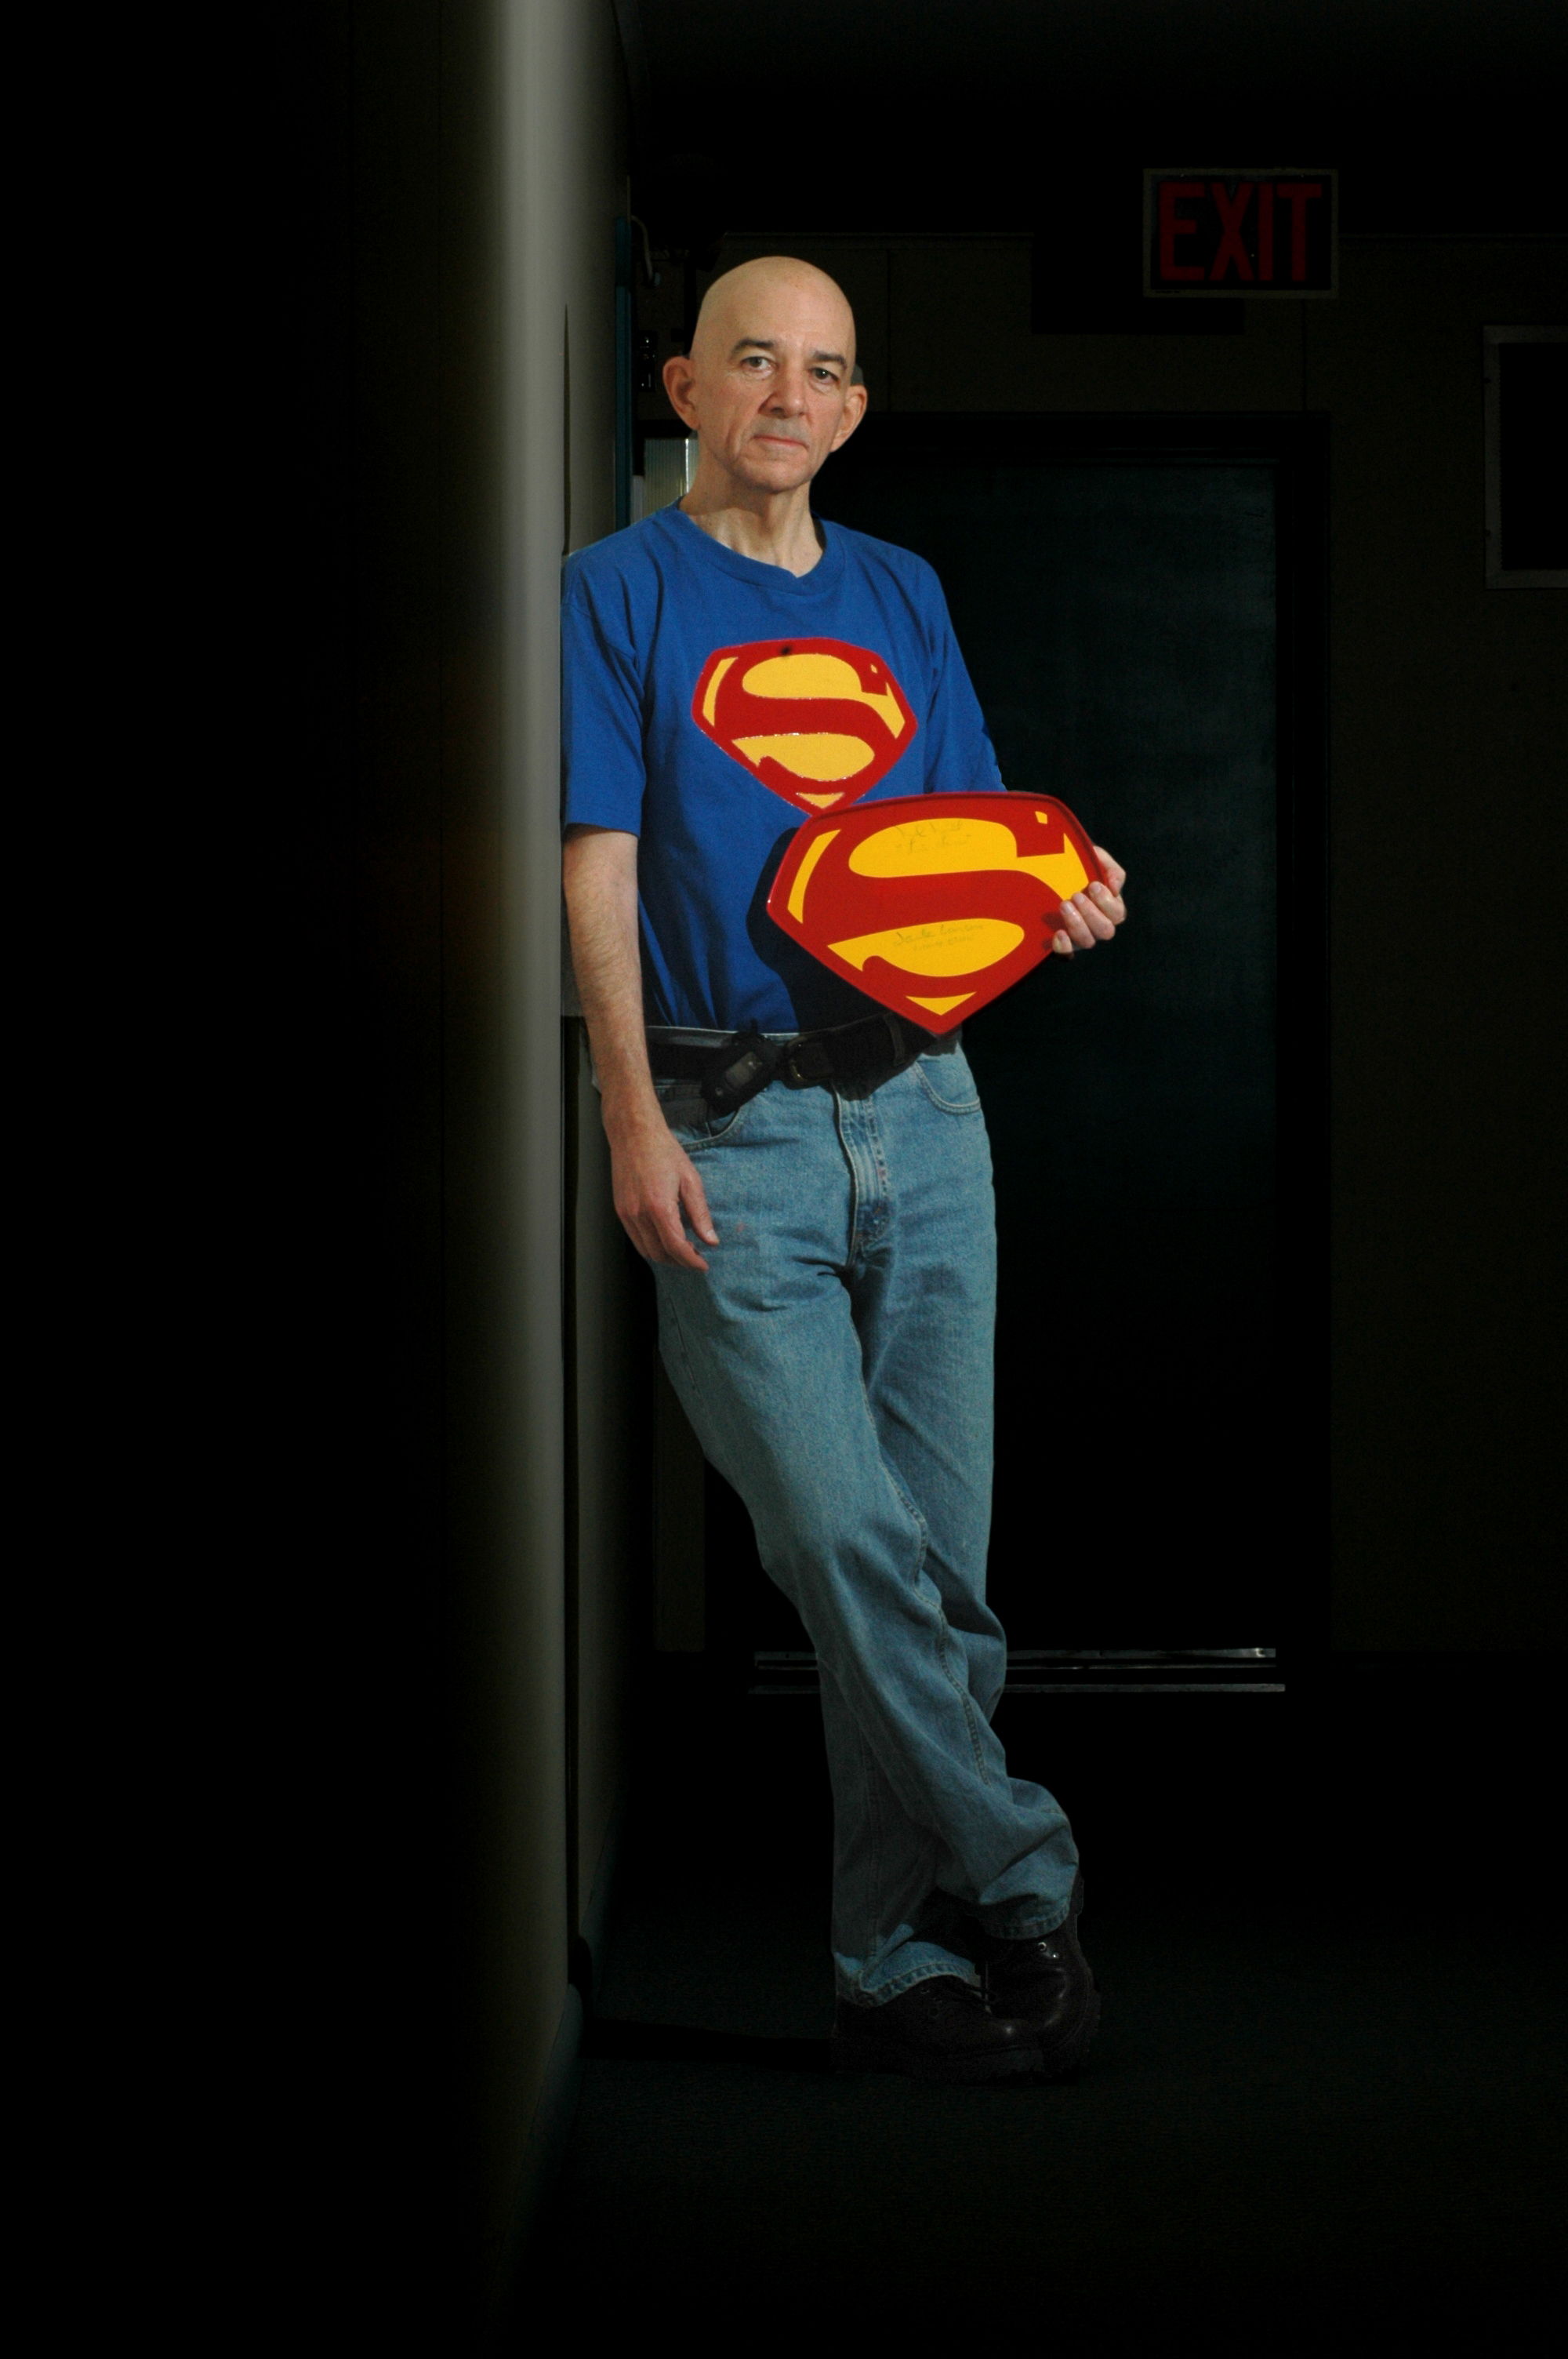 Jim Nolt Superman Historian.jpg